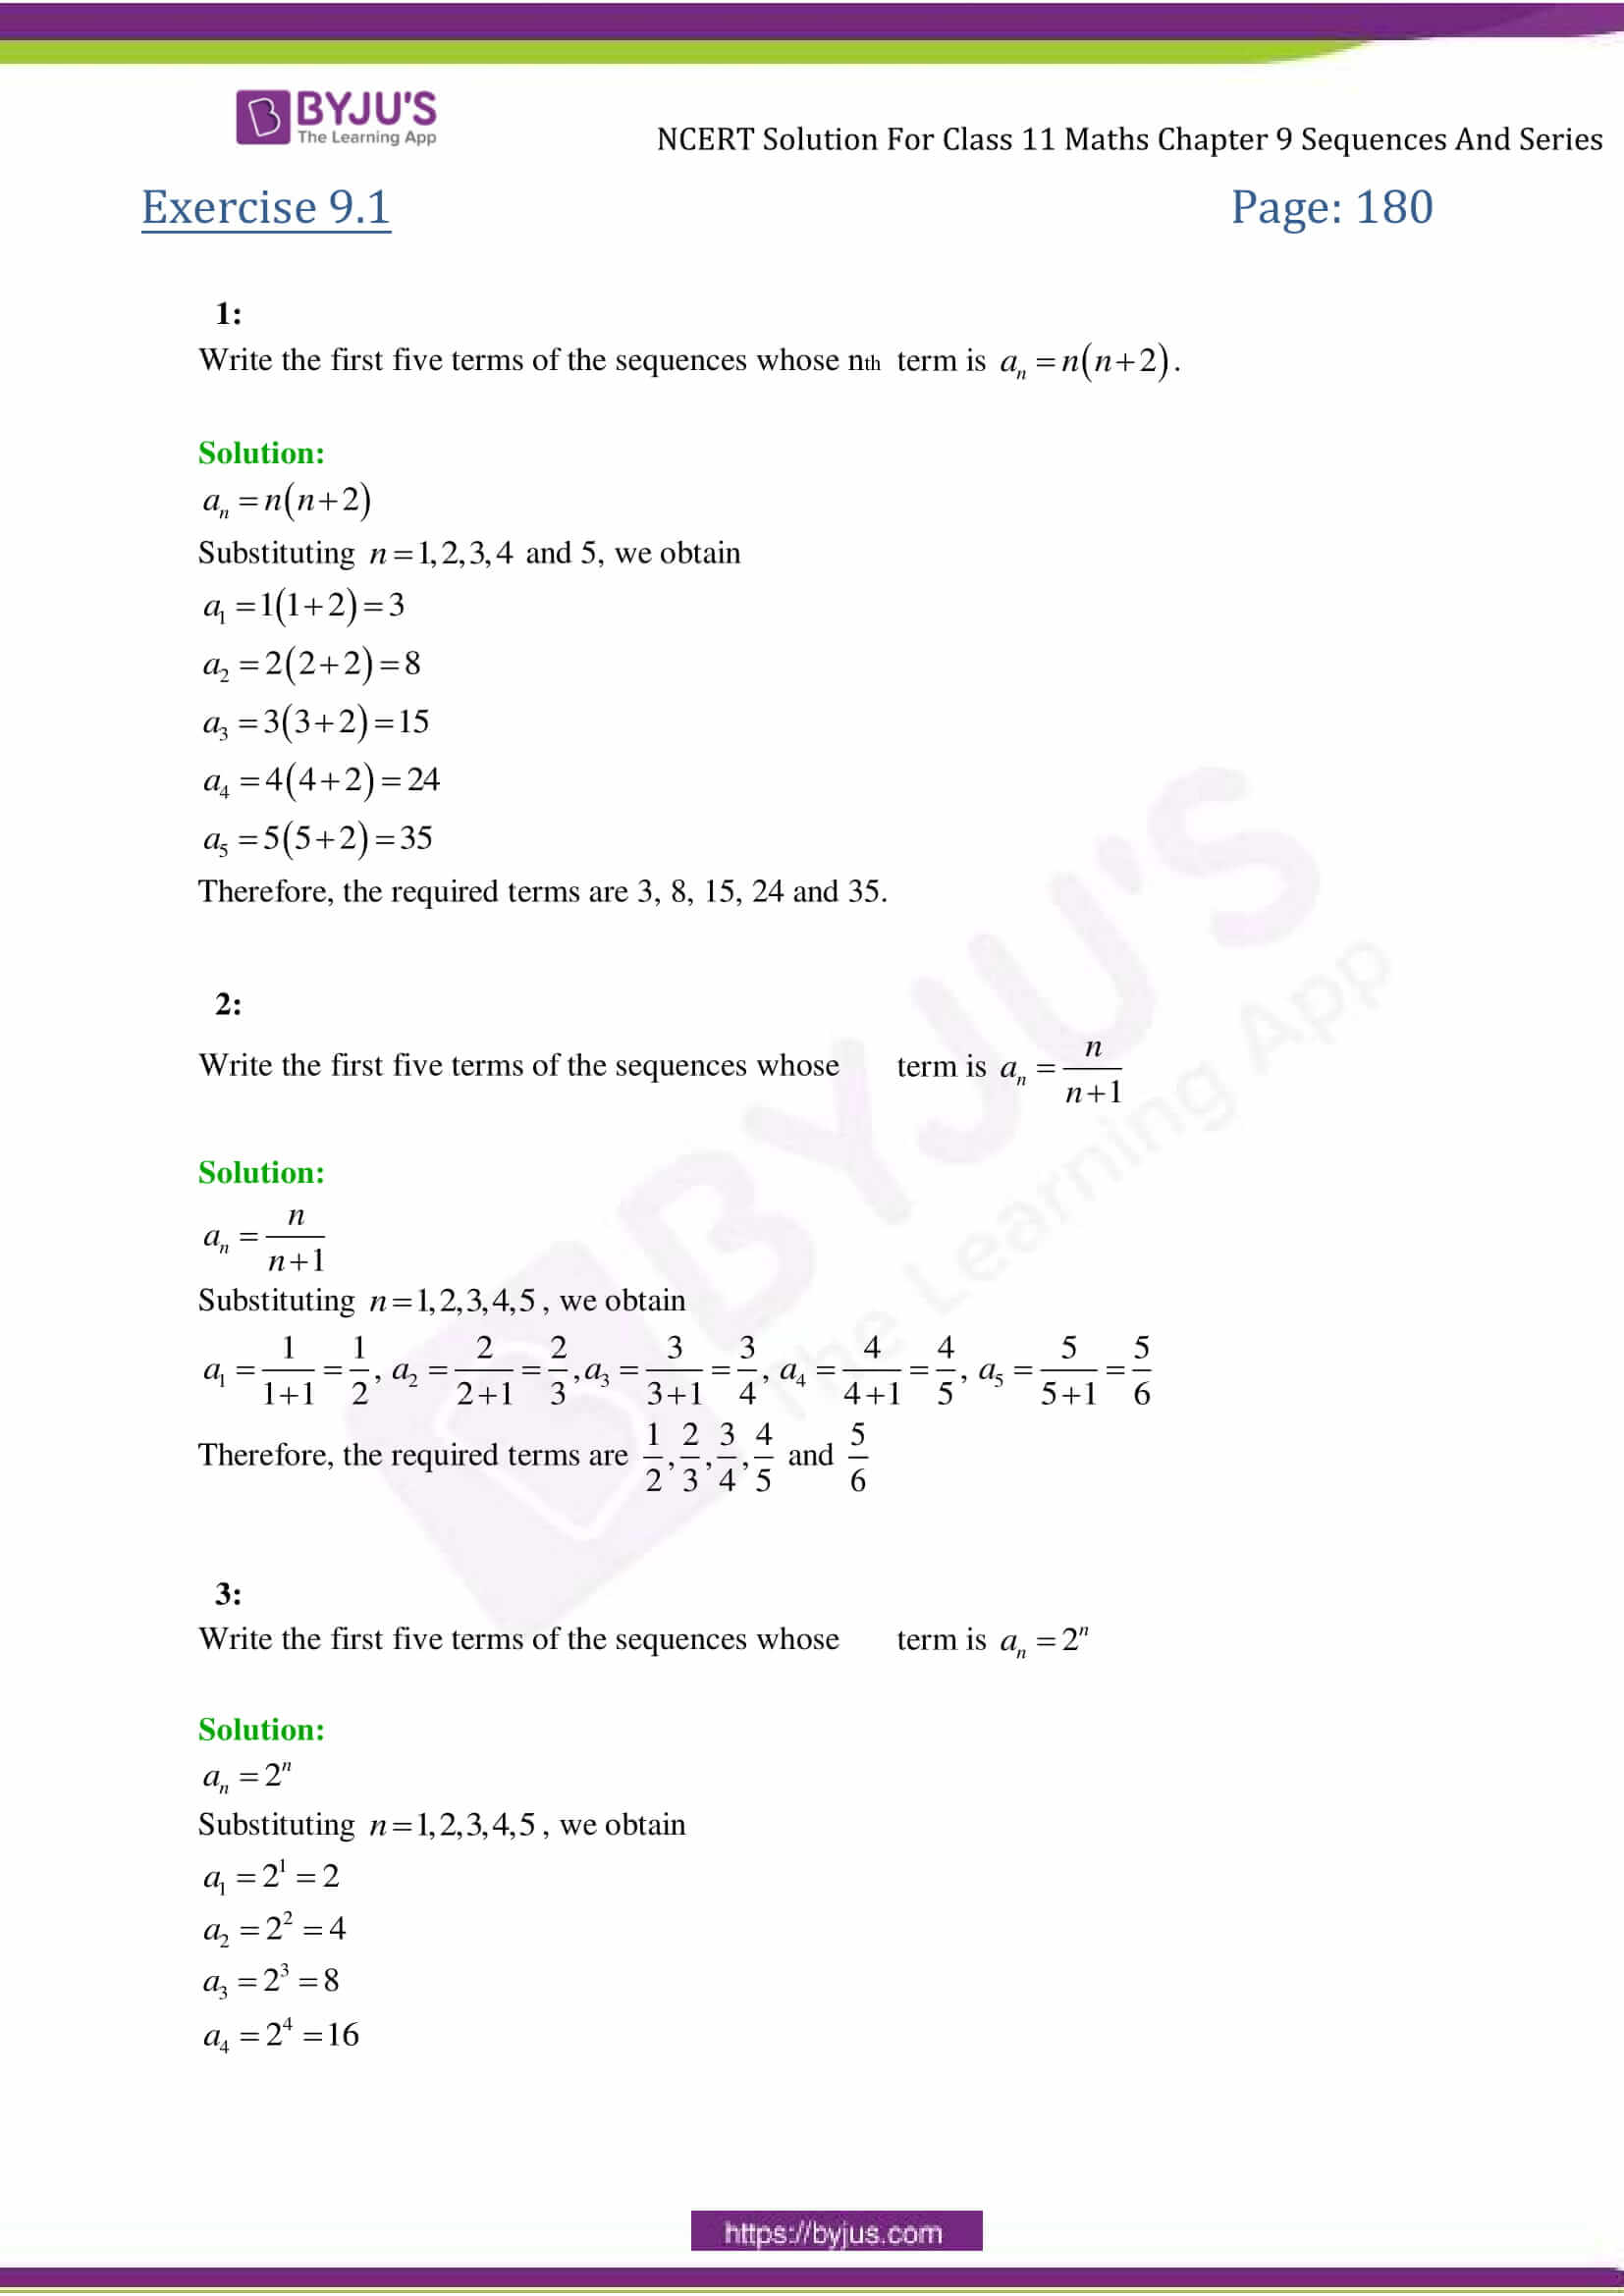 NCERT Solutions Class 11 Maths Chapter 9 Sequences and